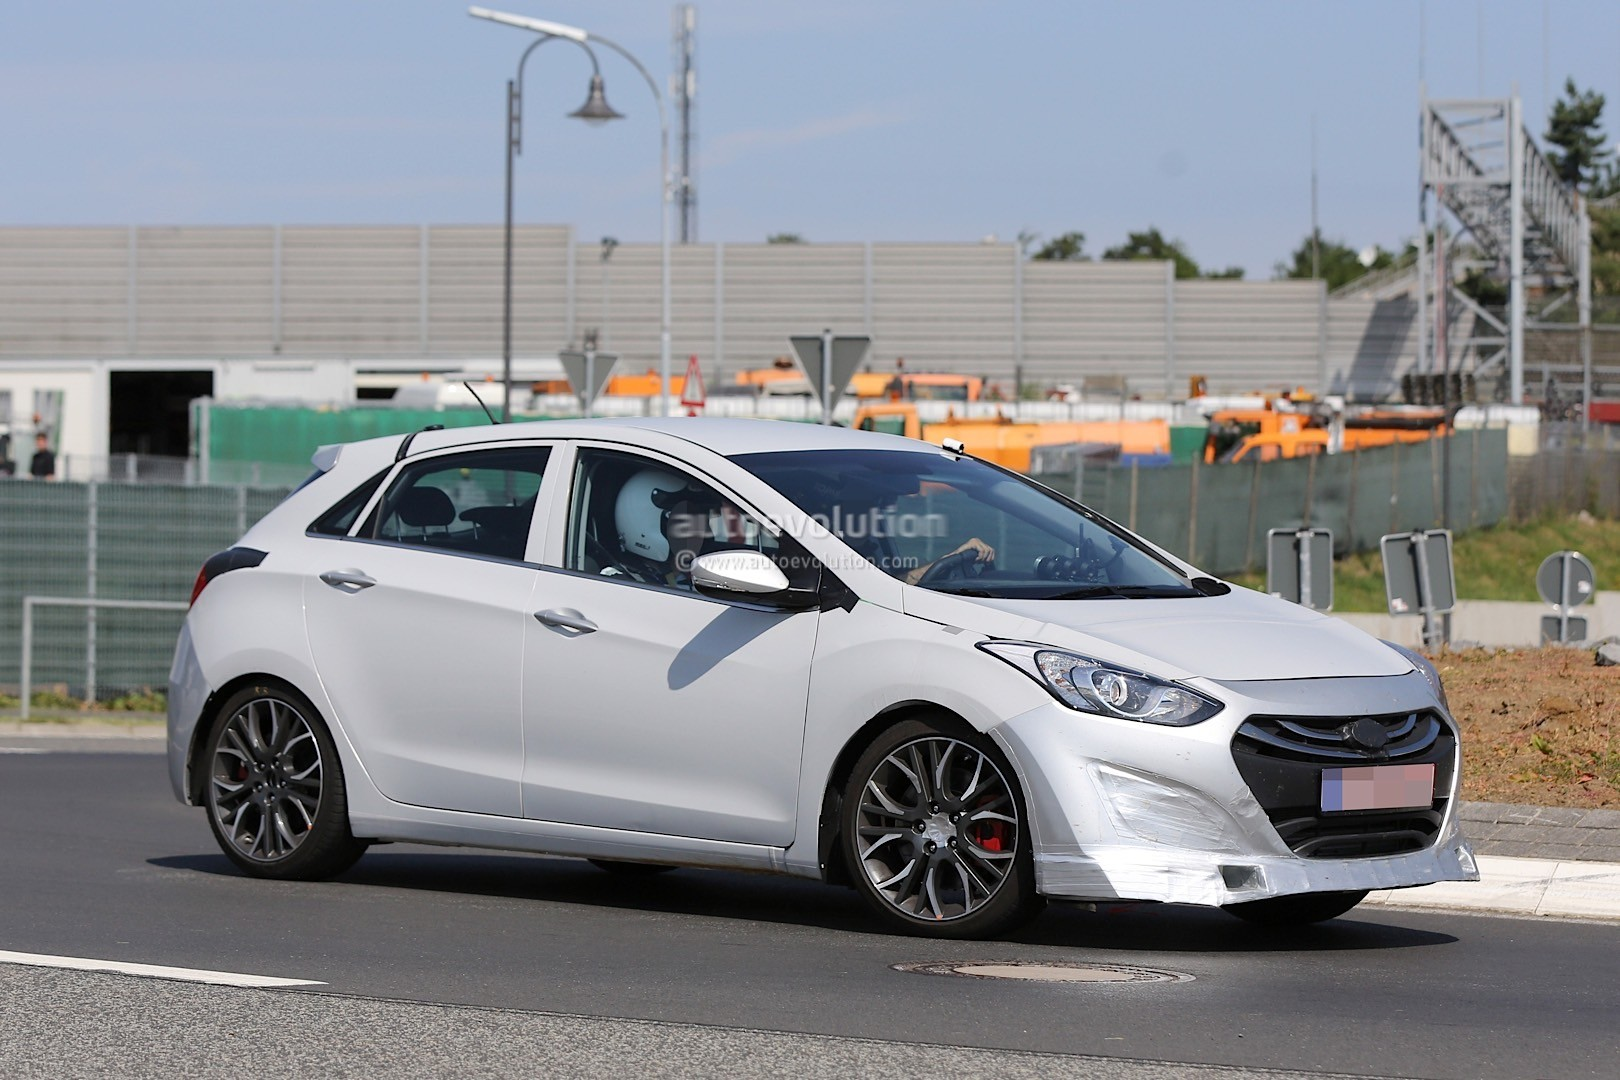 hyundai i30 n series prototype mule spied is this a true. Black Bedroom Furniture Sets. Home Design Ideas